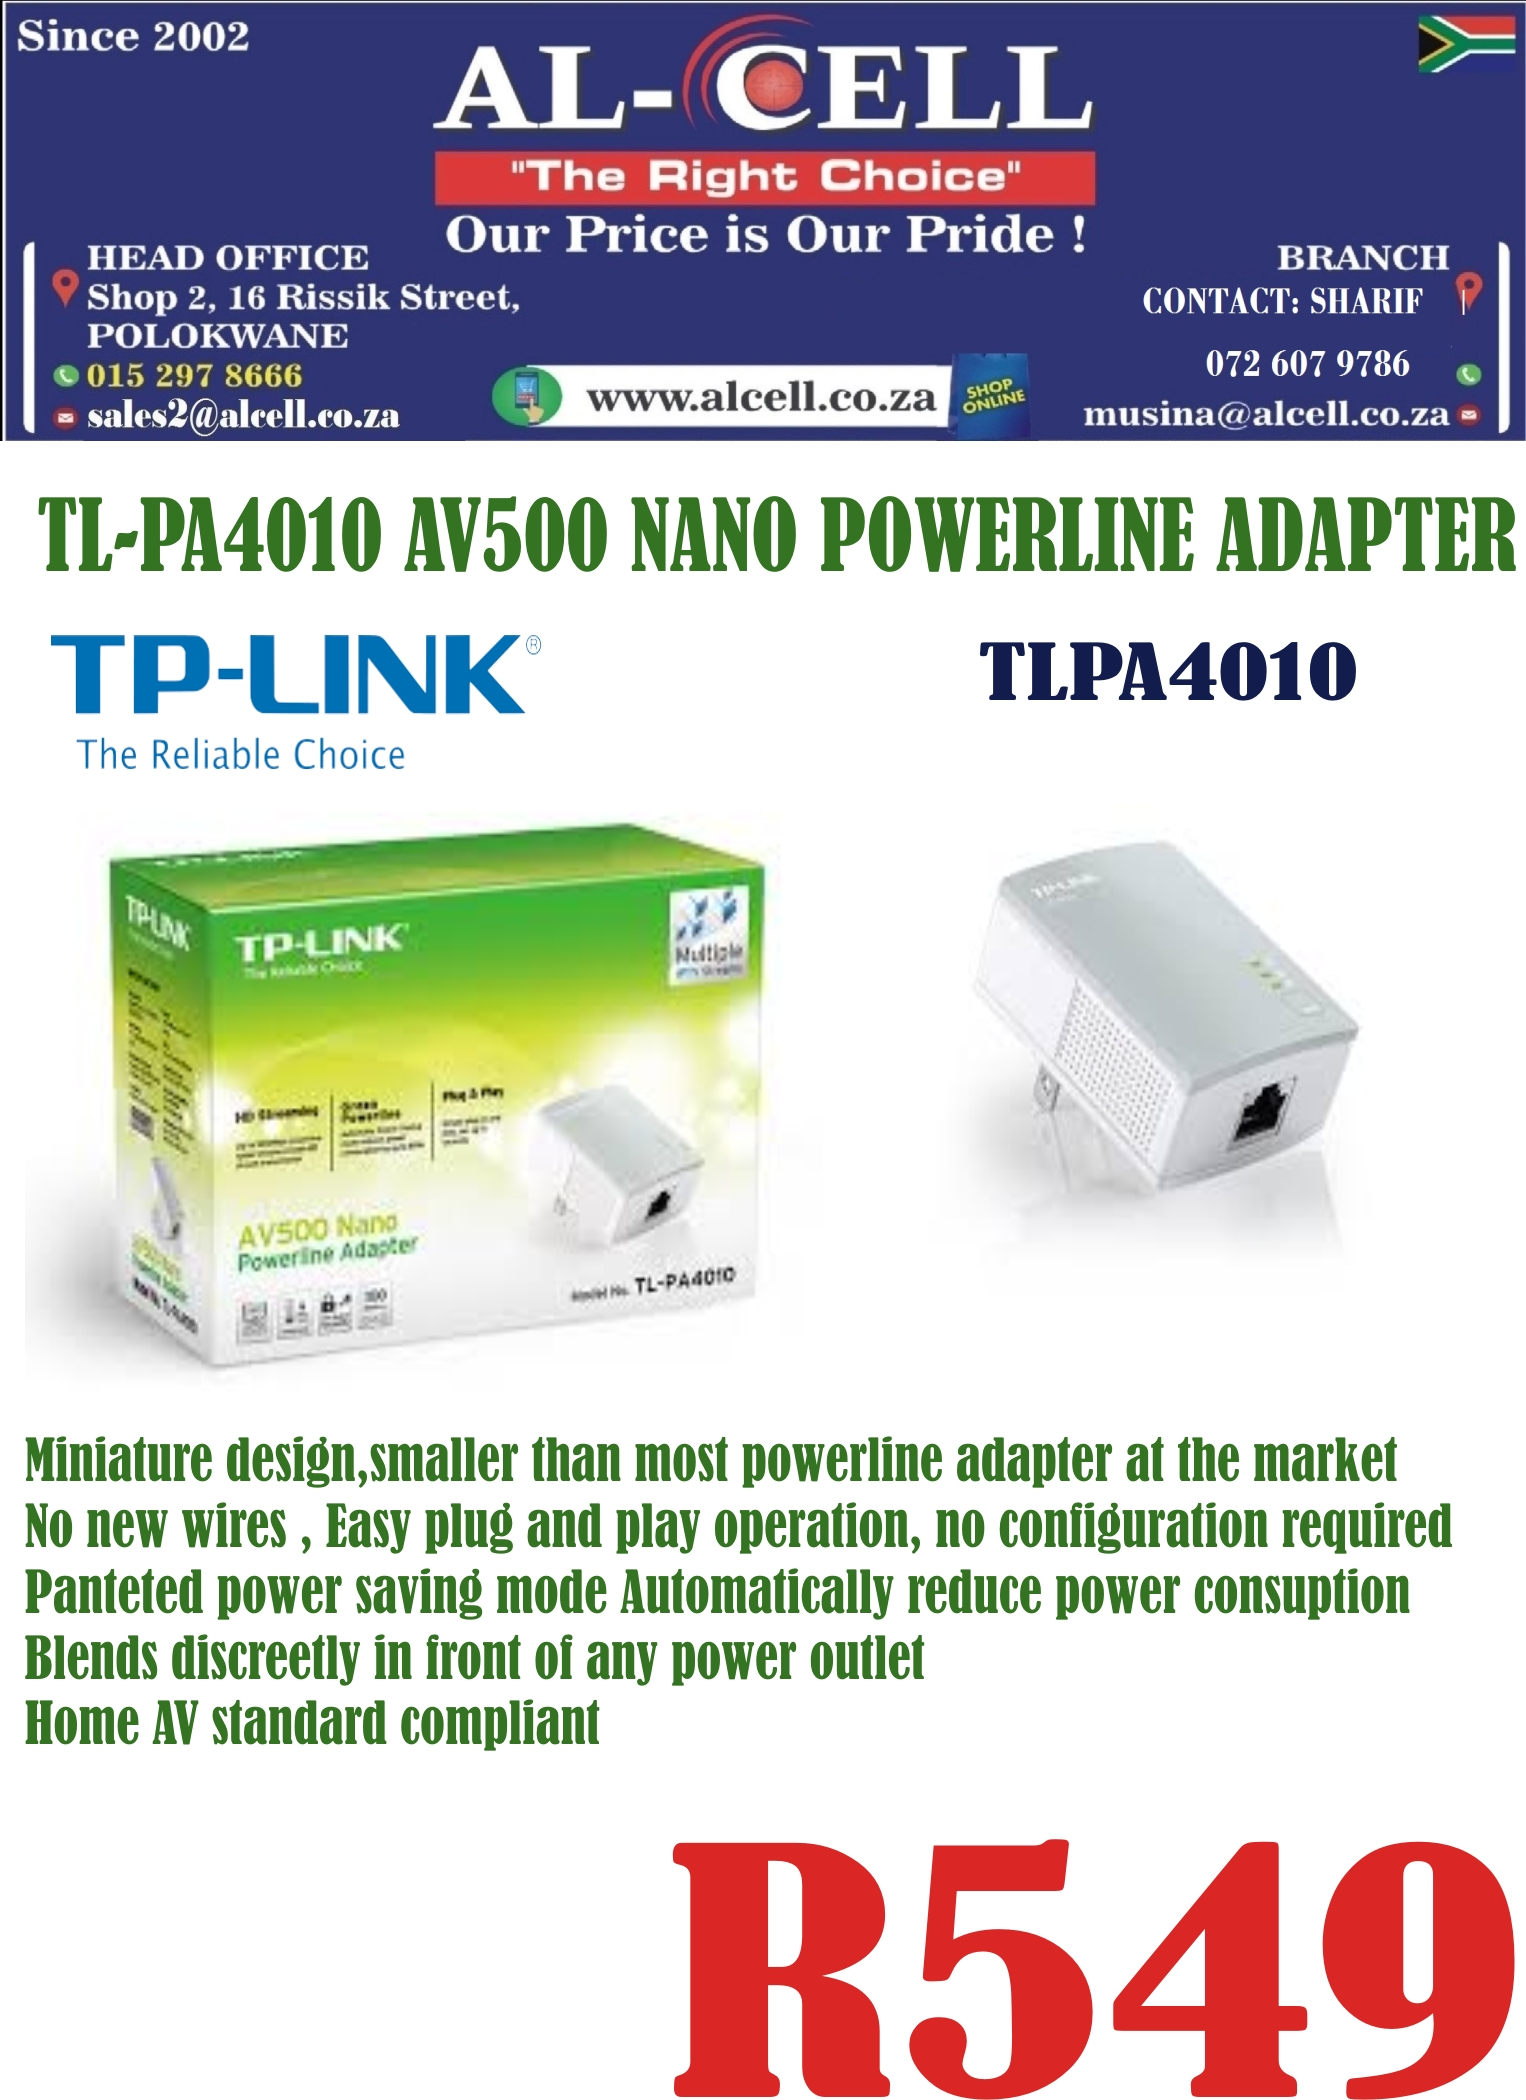 TP-LINK AV500 Nano Powerline Adapter TL-PA4010